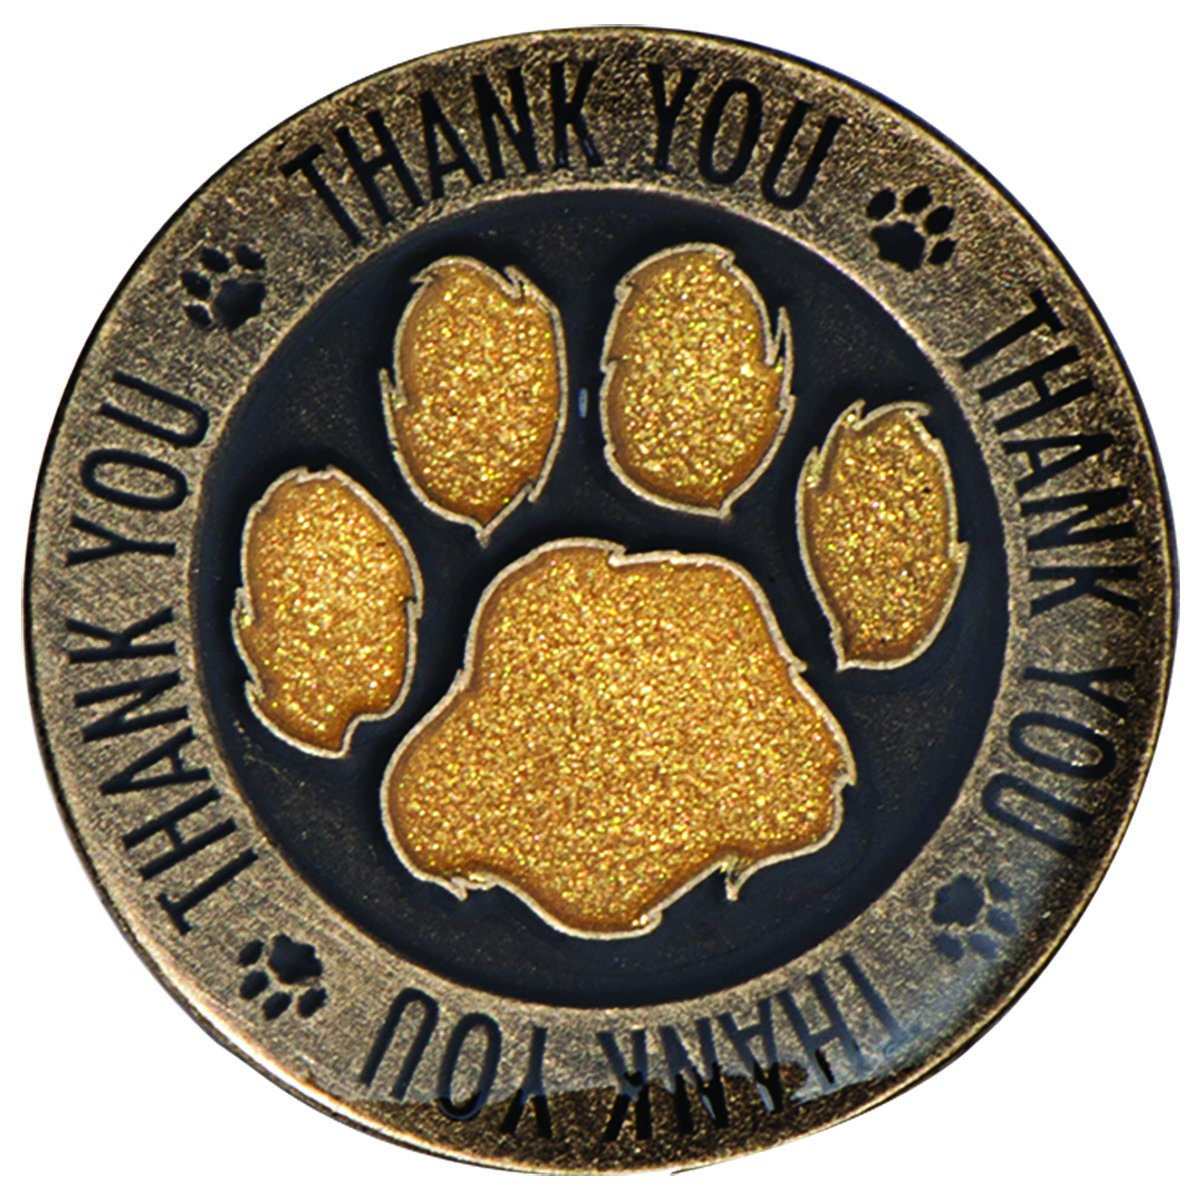 Thank You Appreciation Award Lapel Pins with Gold Glitter Paw Print, 12 Pins